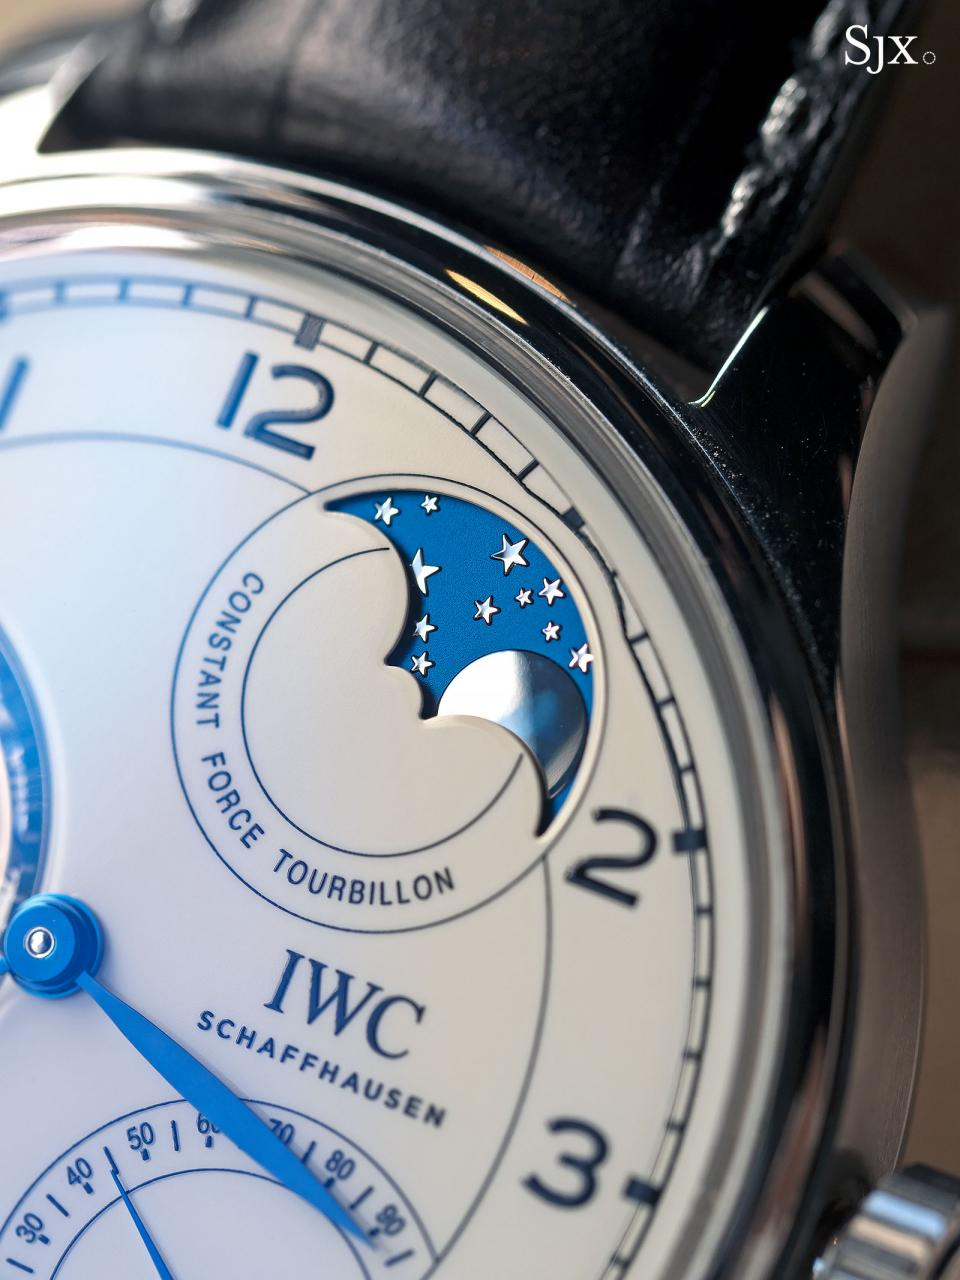 IWC Portugieser Constant-Force Tourbillon 150 Years white 2